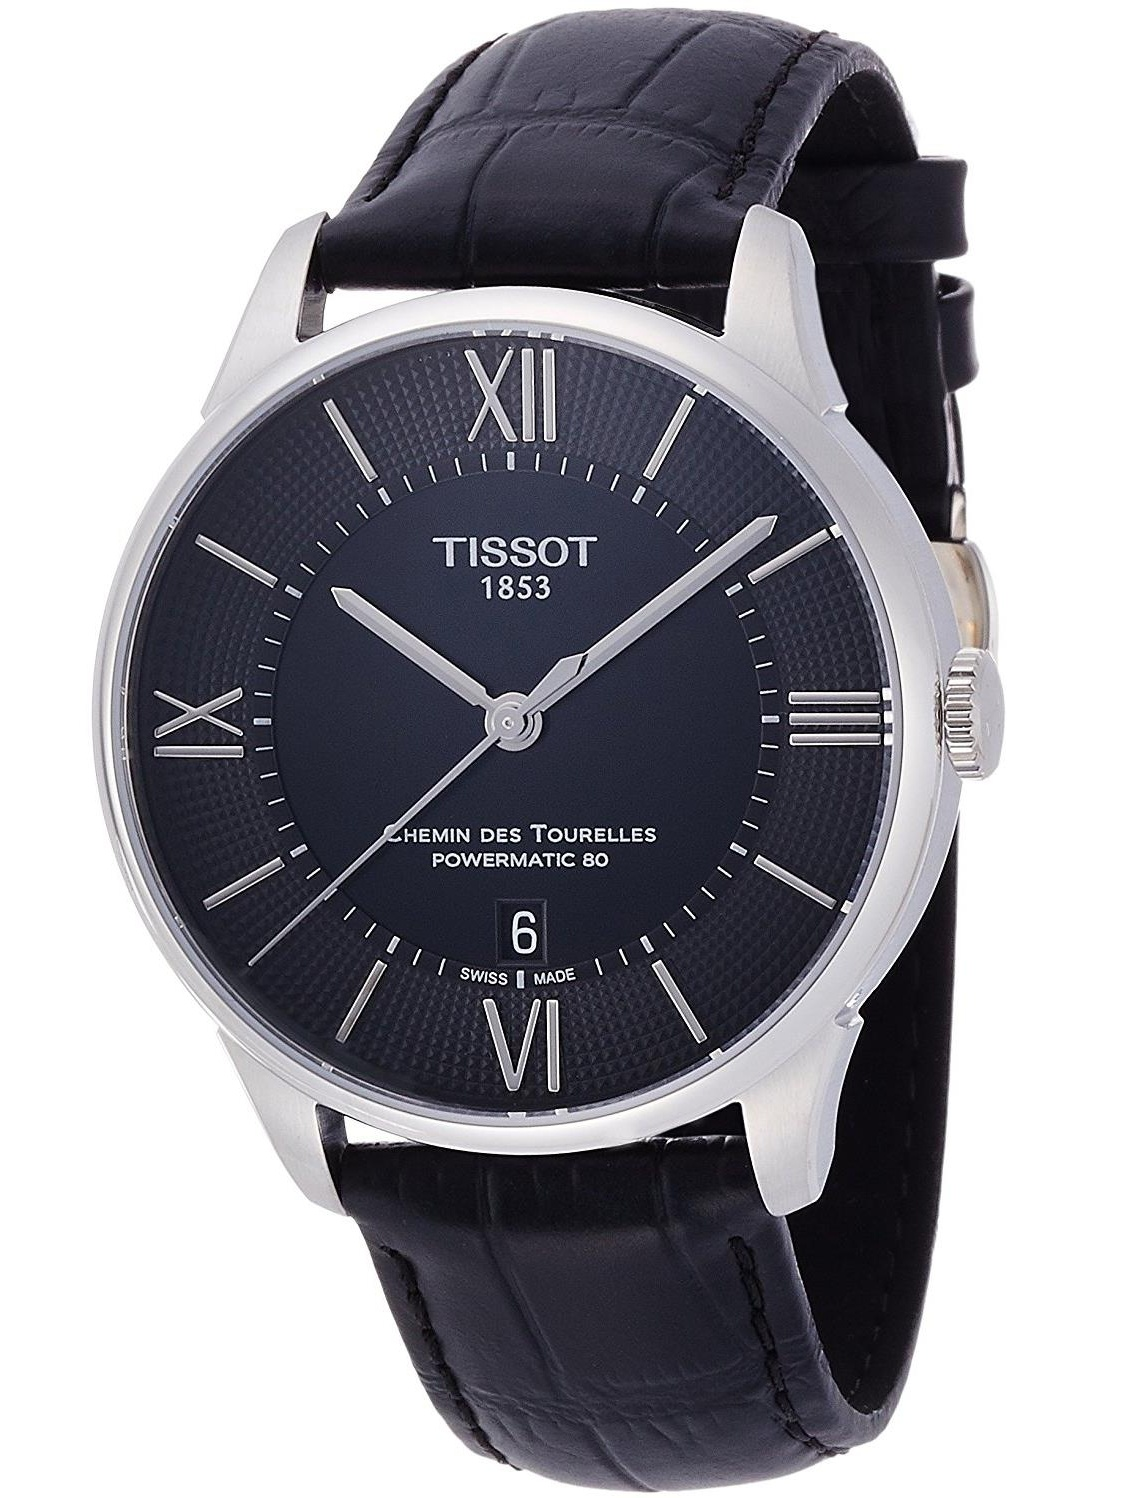 Tissot Men's 42mm Black Alligator Leather Band Steel Case S. Sapphire Automatic Watch T0994071605800 by Tissot